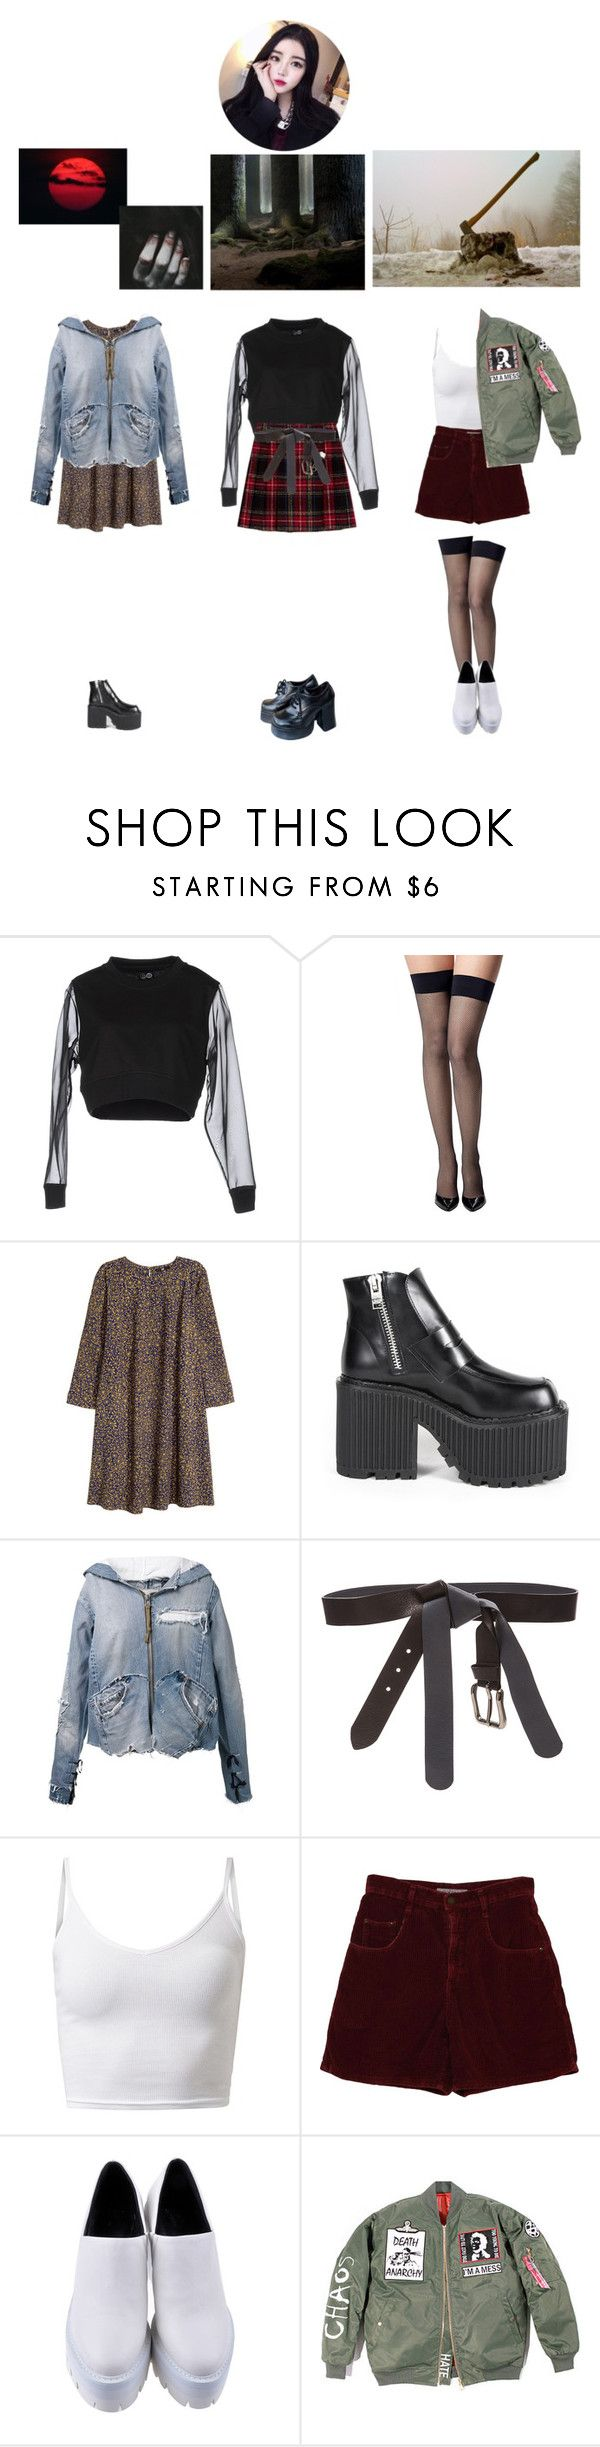 """""""  Siren   Hobgoblin (ft. Koon Bae) — Ivy (Solo Scenes)"""" by pc-pink ❤ liked on Polyvore featuring Cheap Monday, Commando, H&M, Greg Lauren and Maison Margiela"""